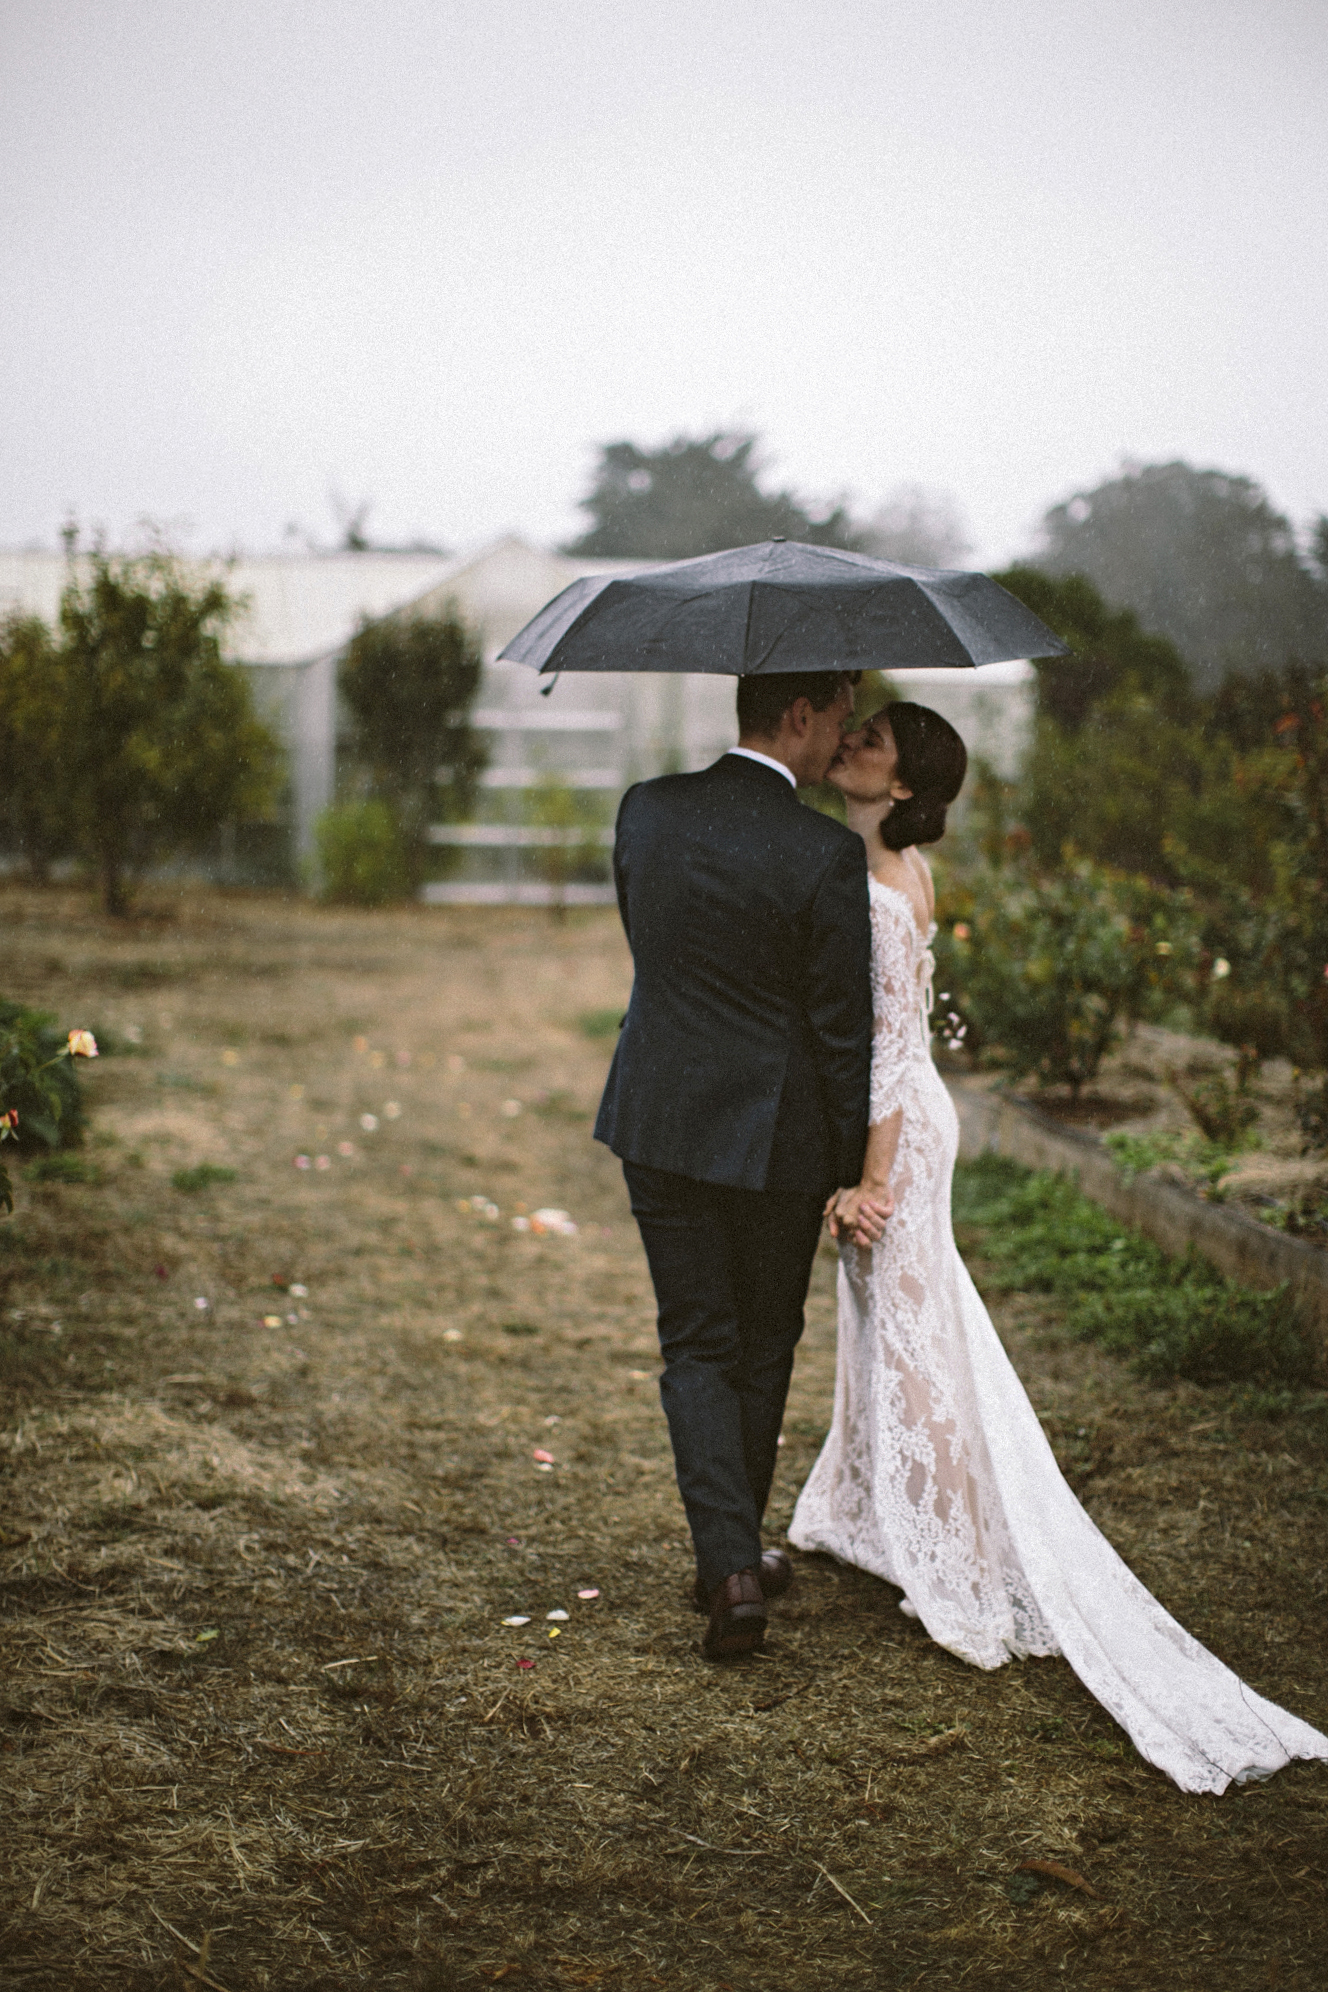 rainy wedding bride and groom kissing with umbrella